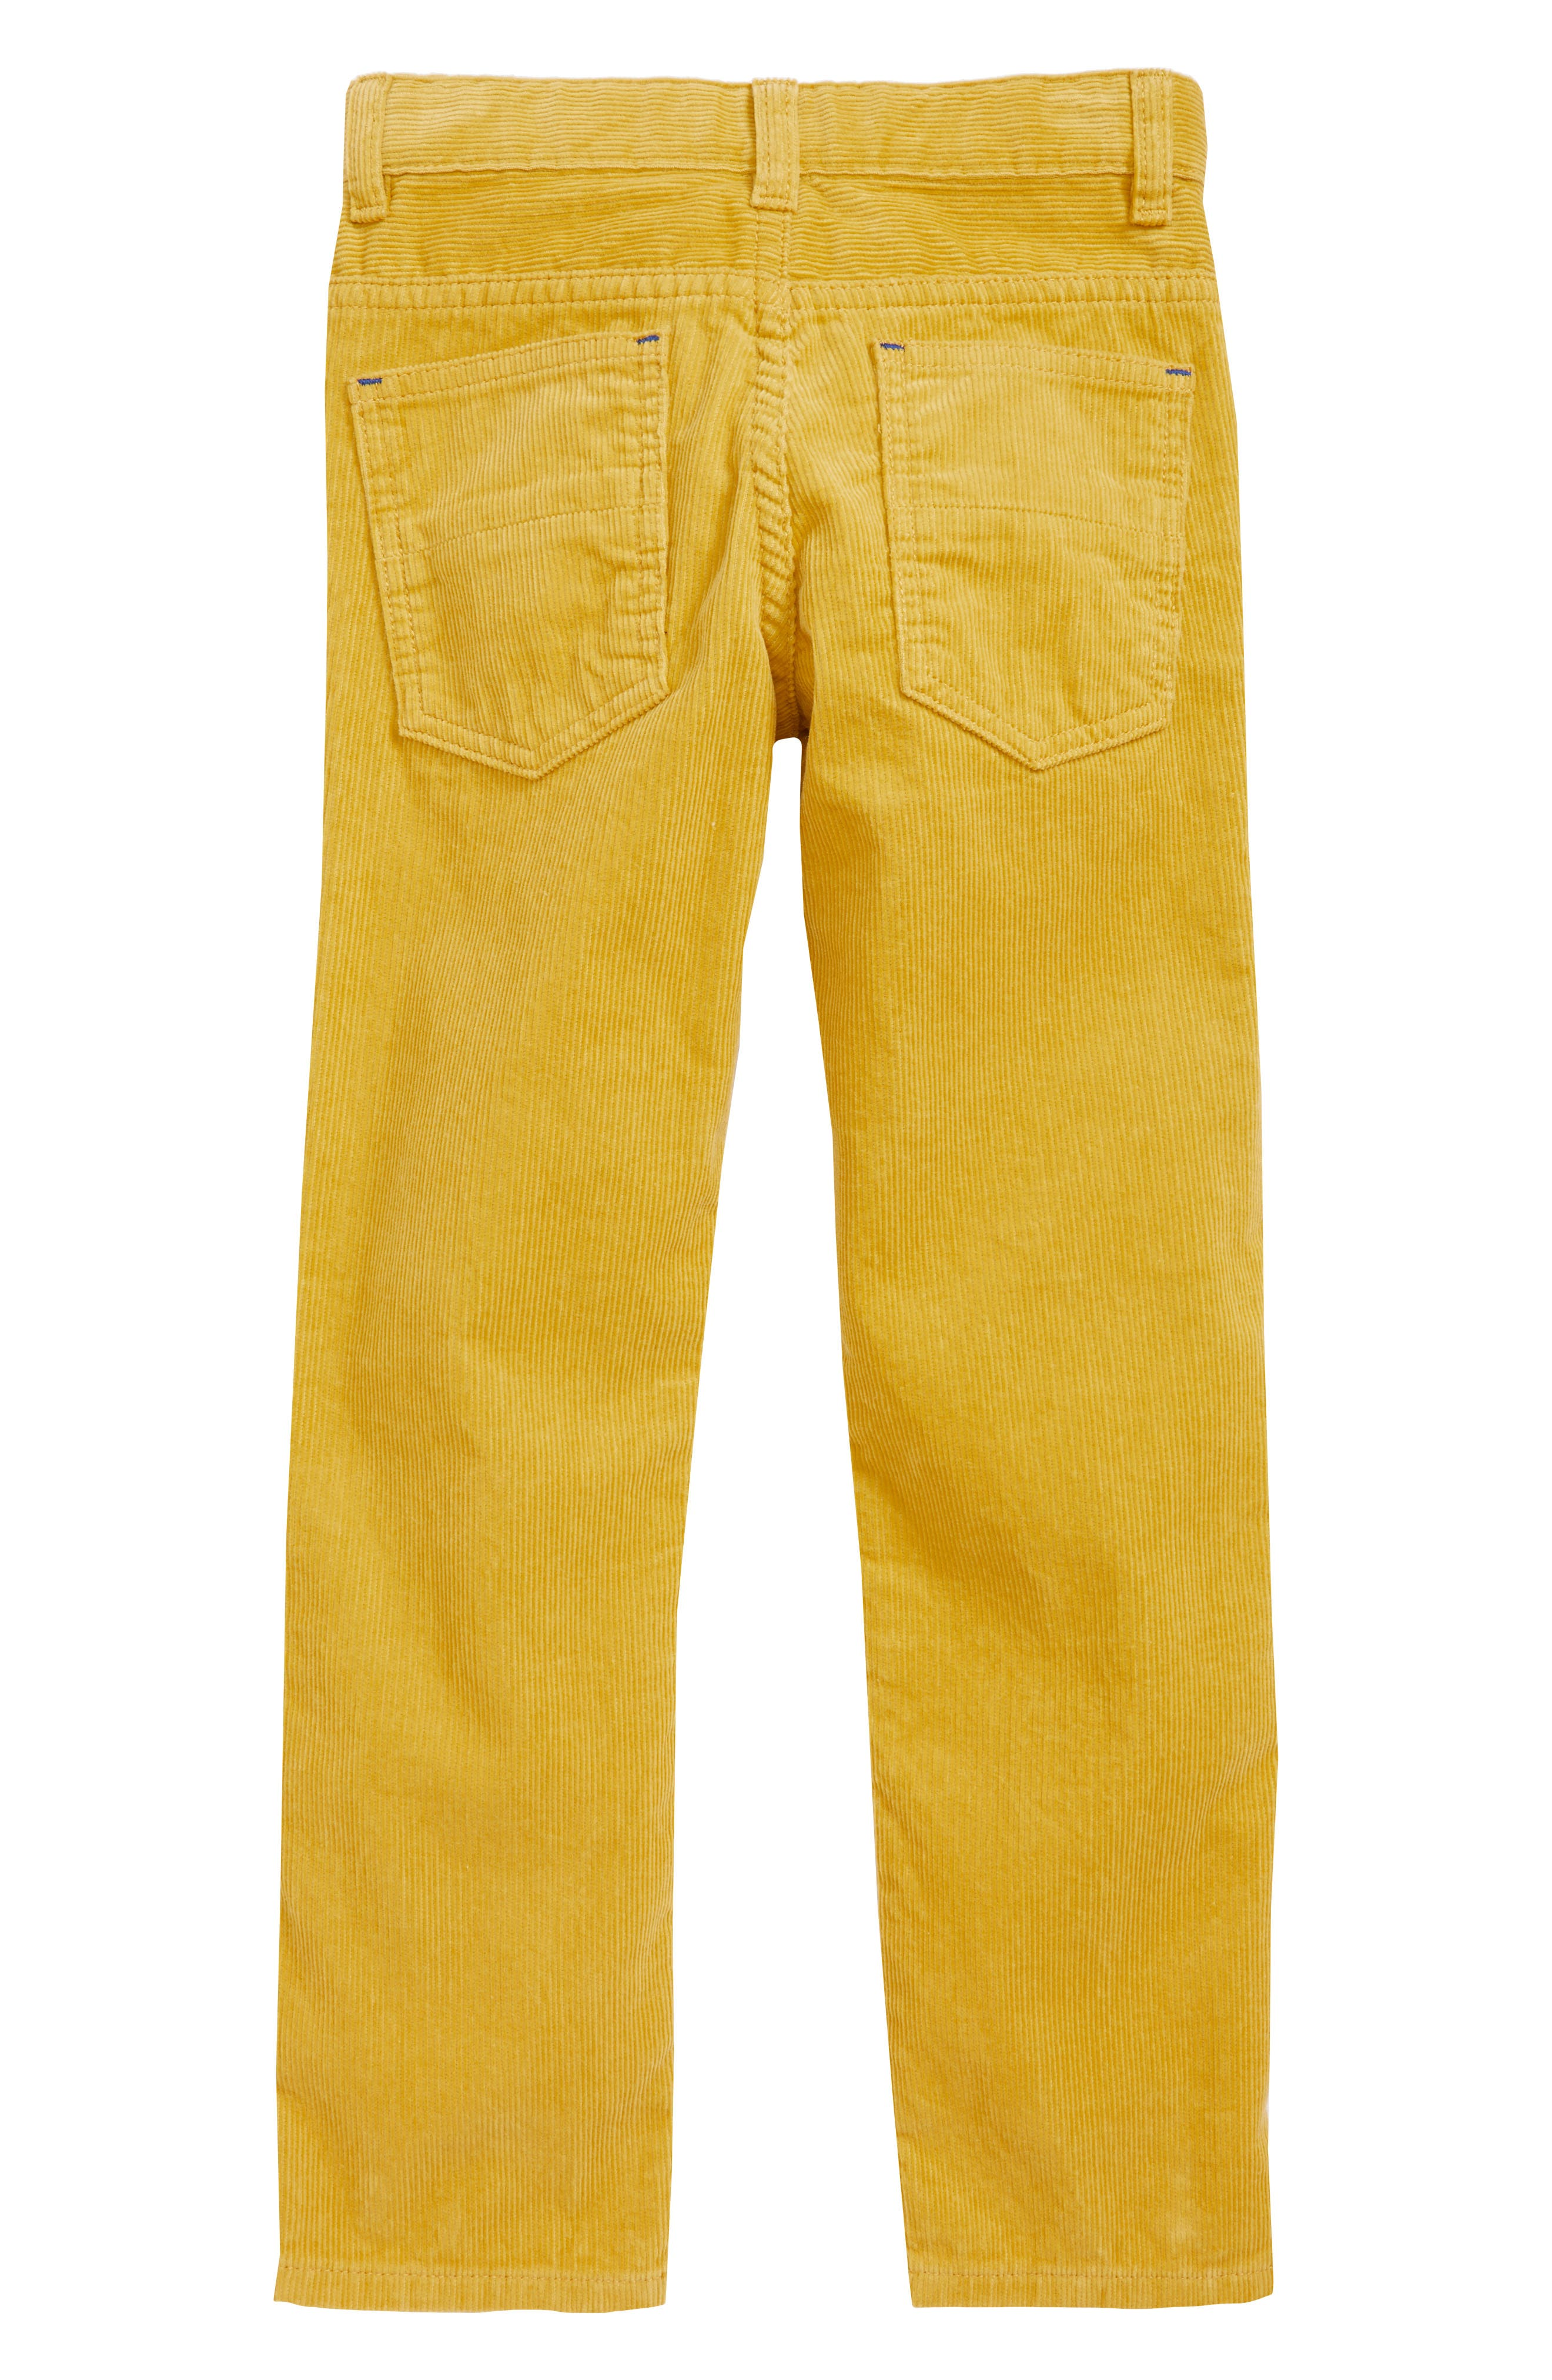 Slim Corduroy Jeans,                             Alternate thumbnail 2, color,                             SOFT LIME YELLOW